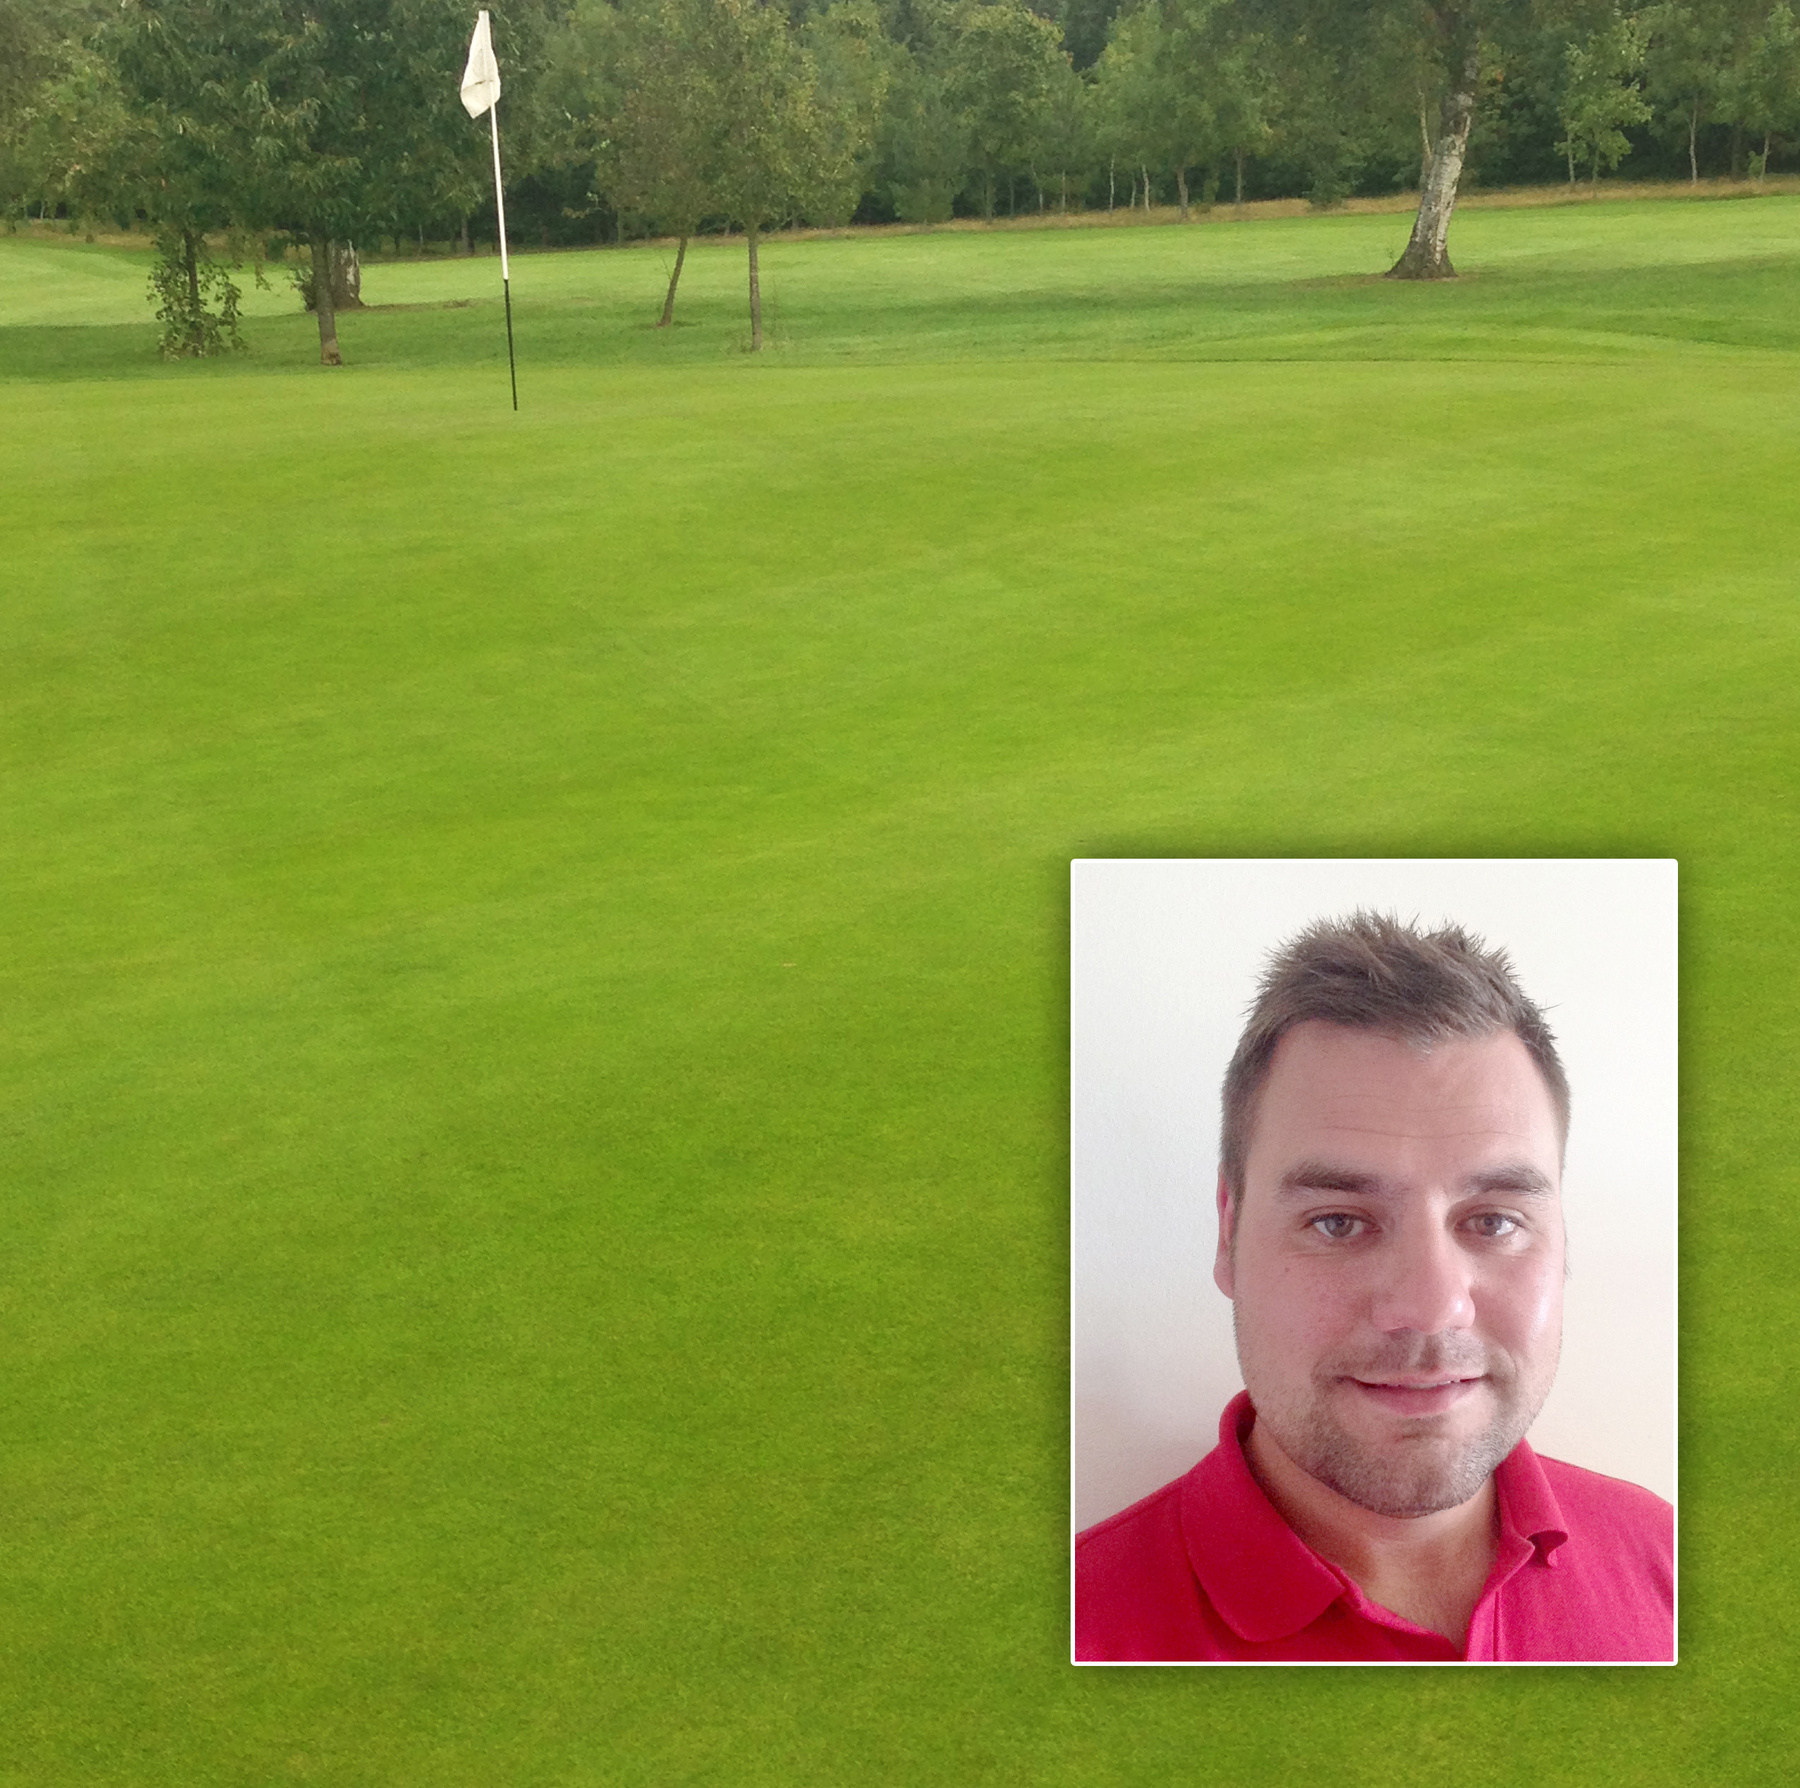 Redditch Green Golf Club with Course Manager Karl Williams